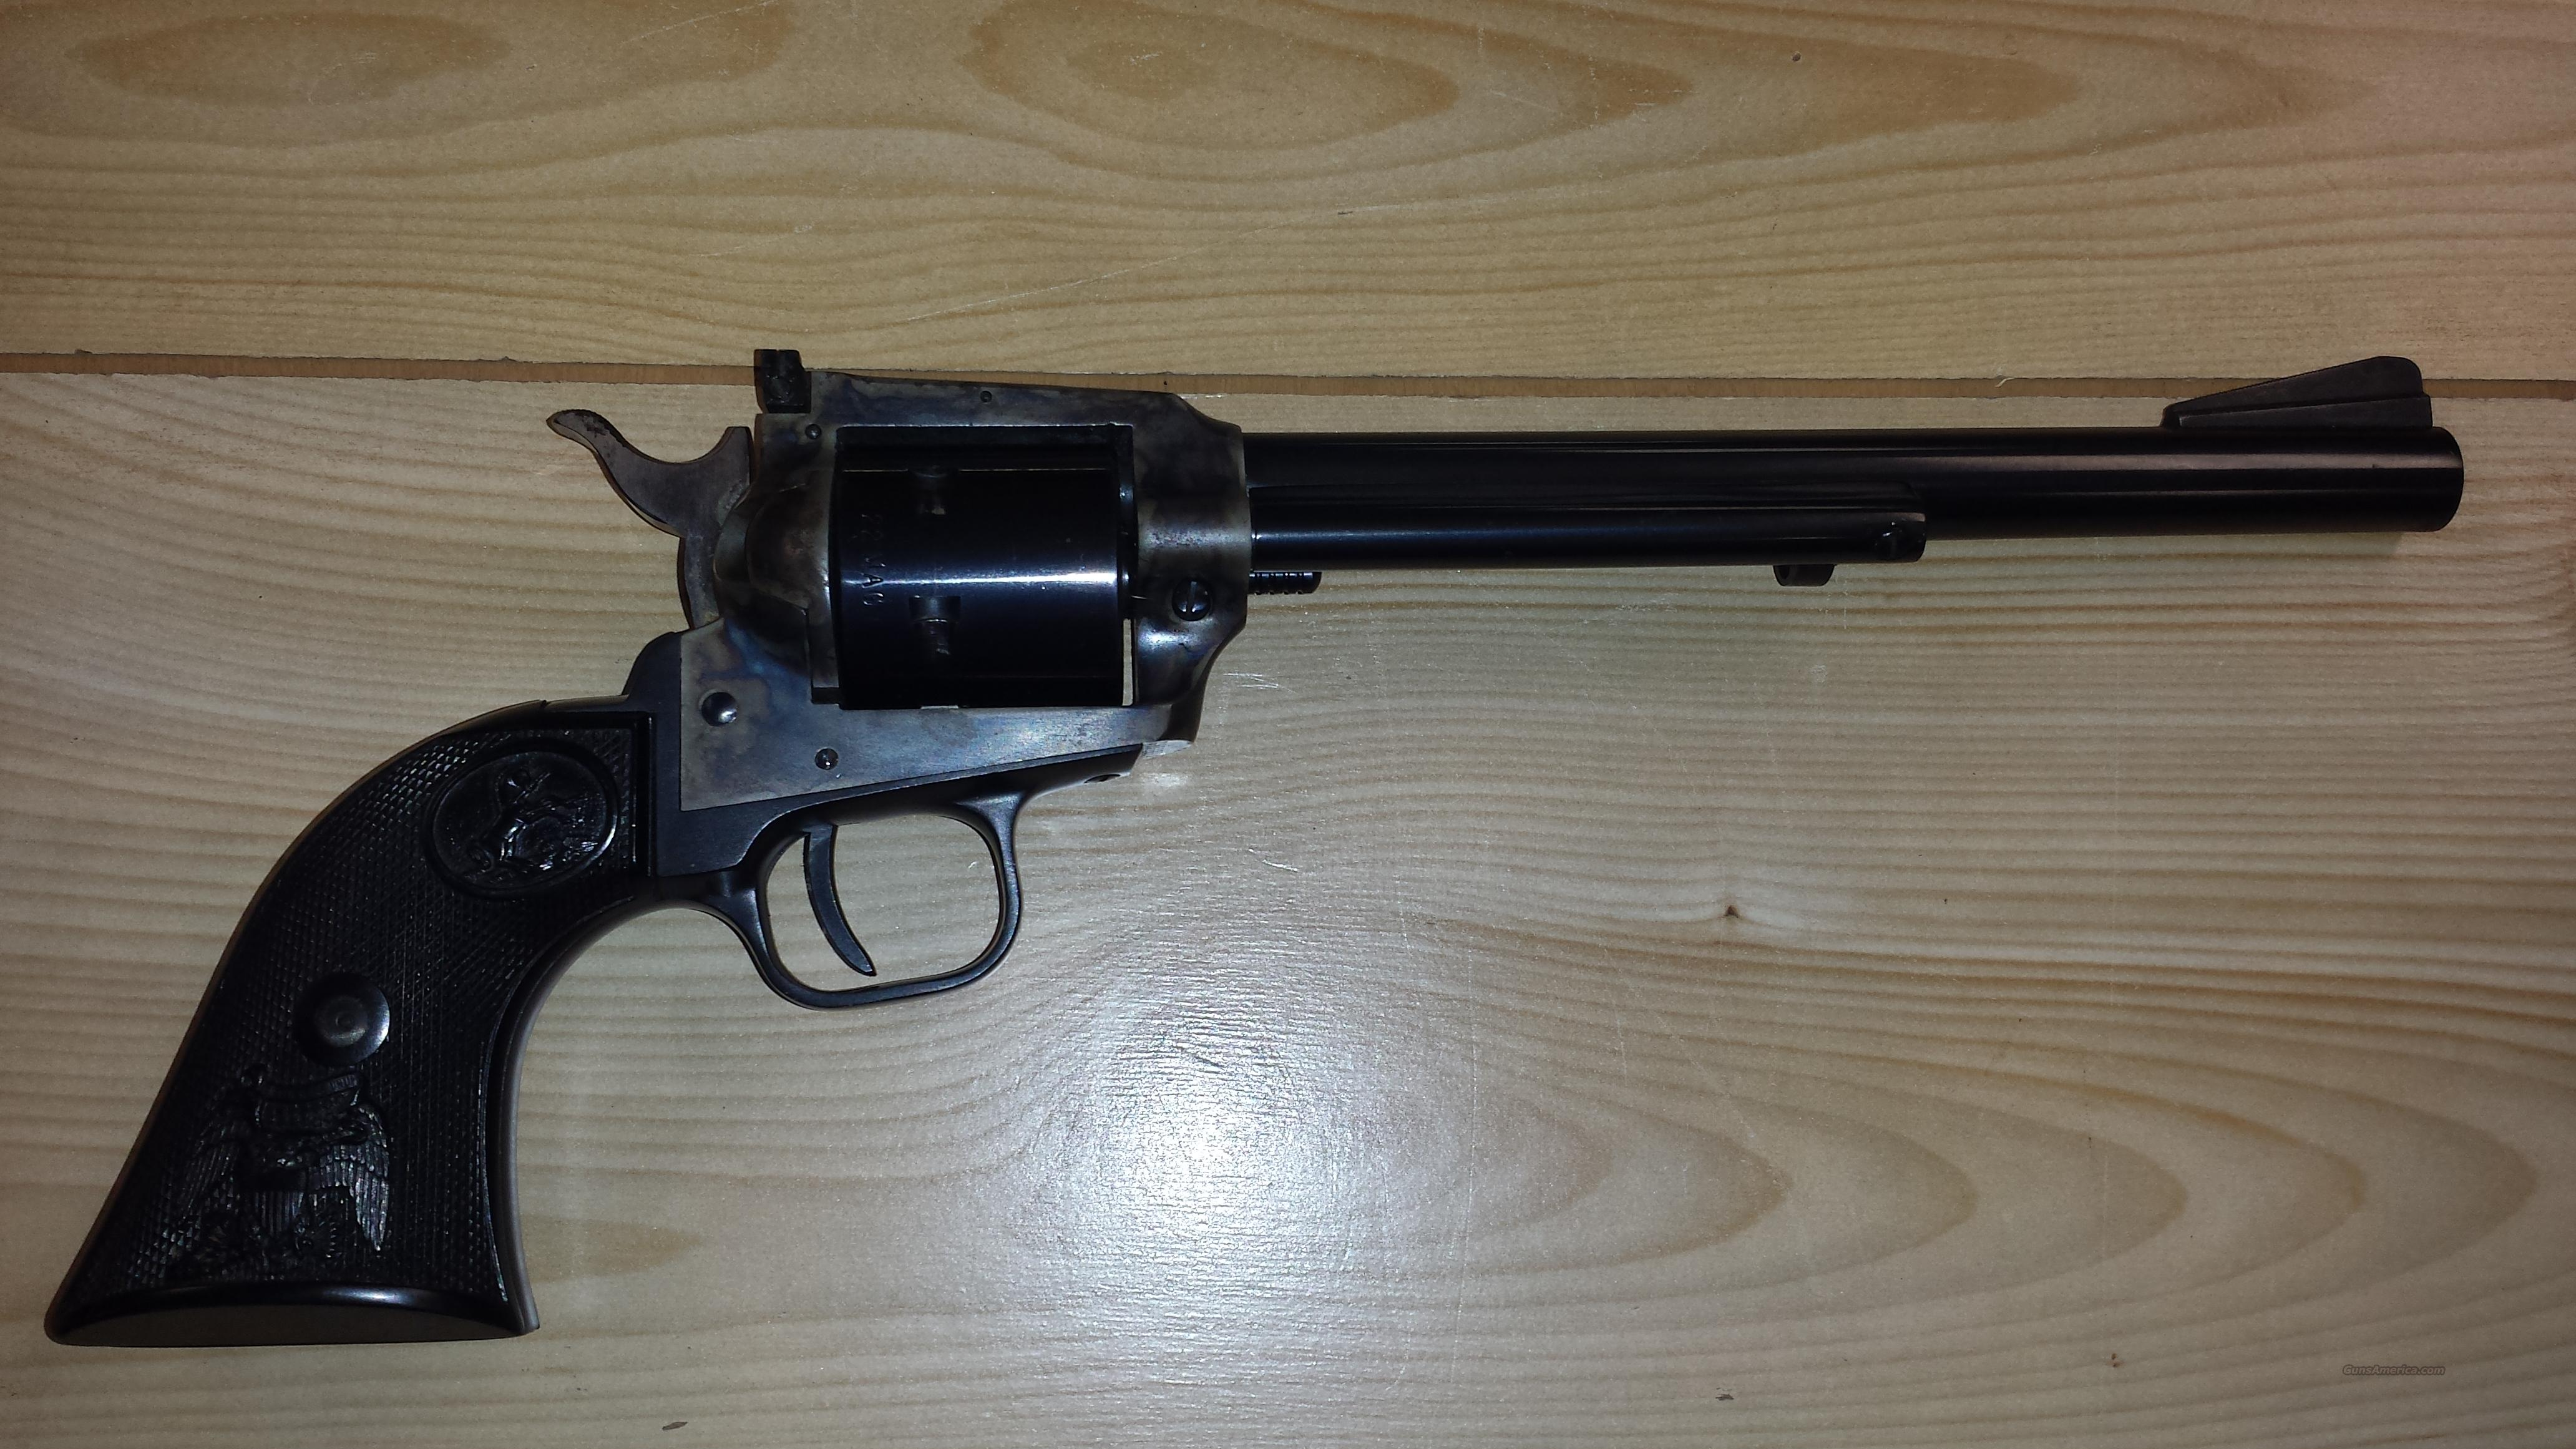 COLT NEW FRONTIER .22 MAGNUM  Guns > Pistols > Colt Single Action Revolvers - Modern (22 Cal.)